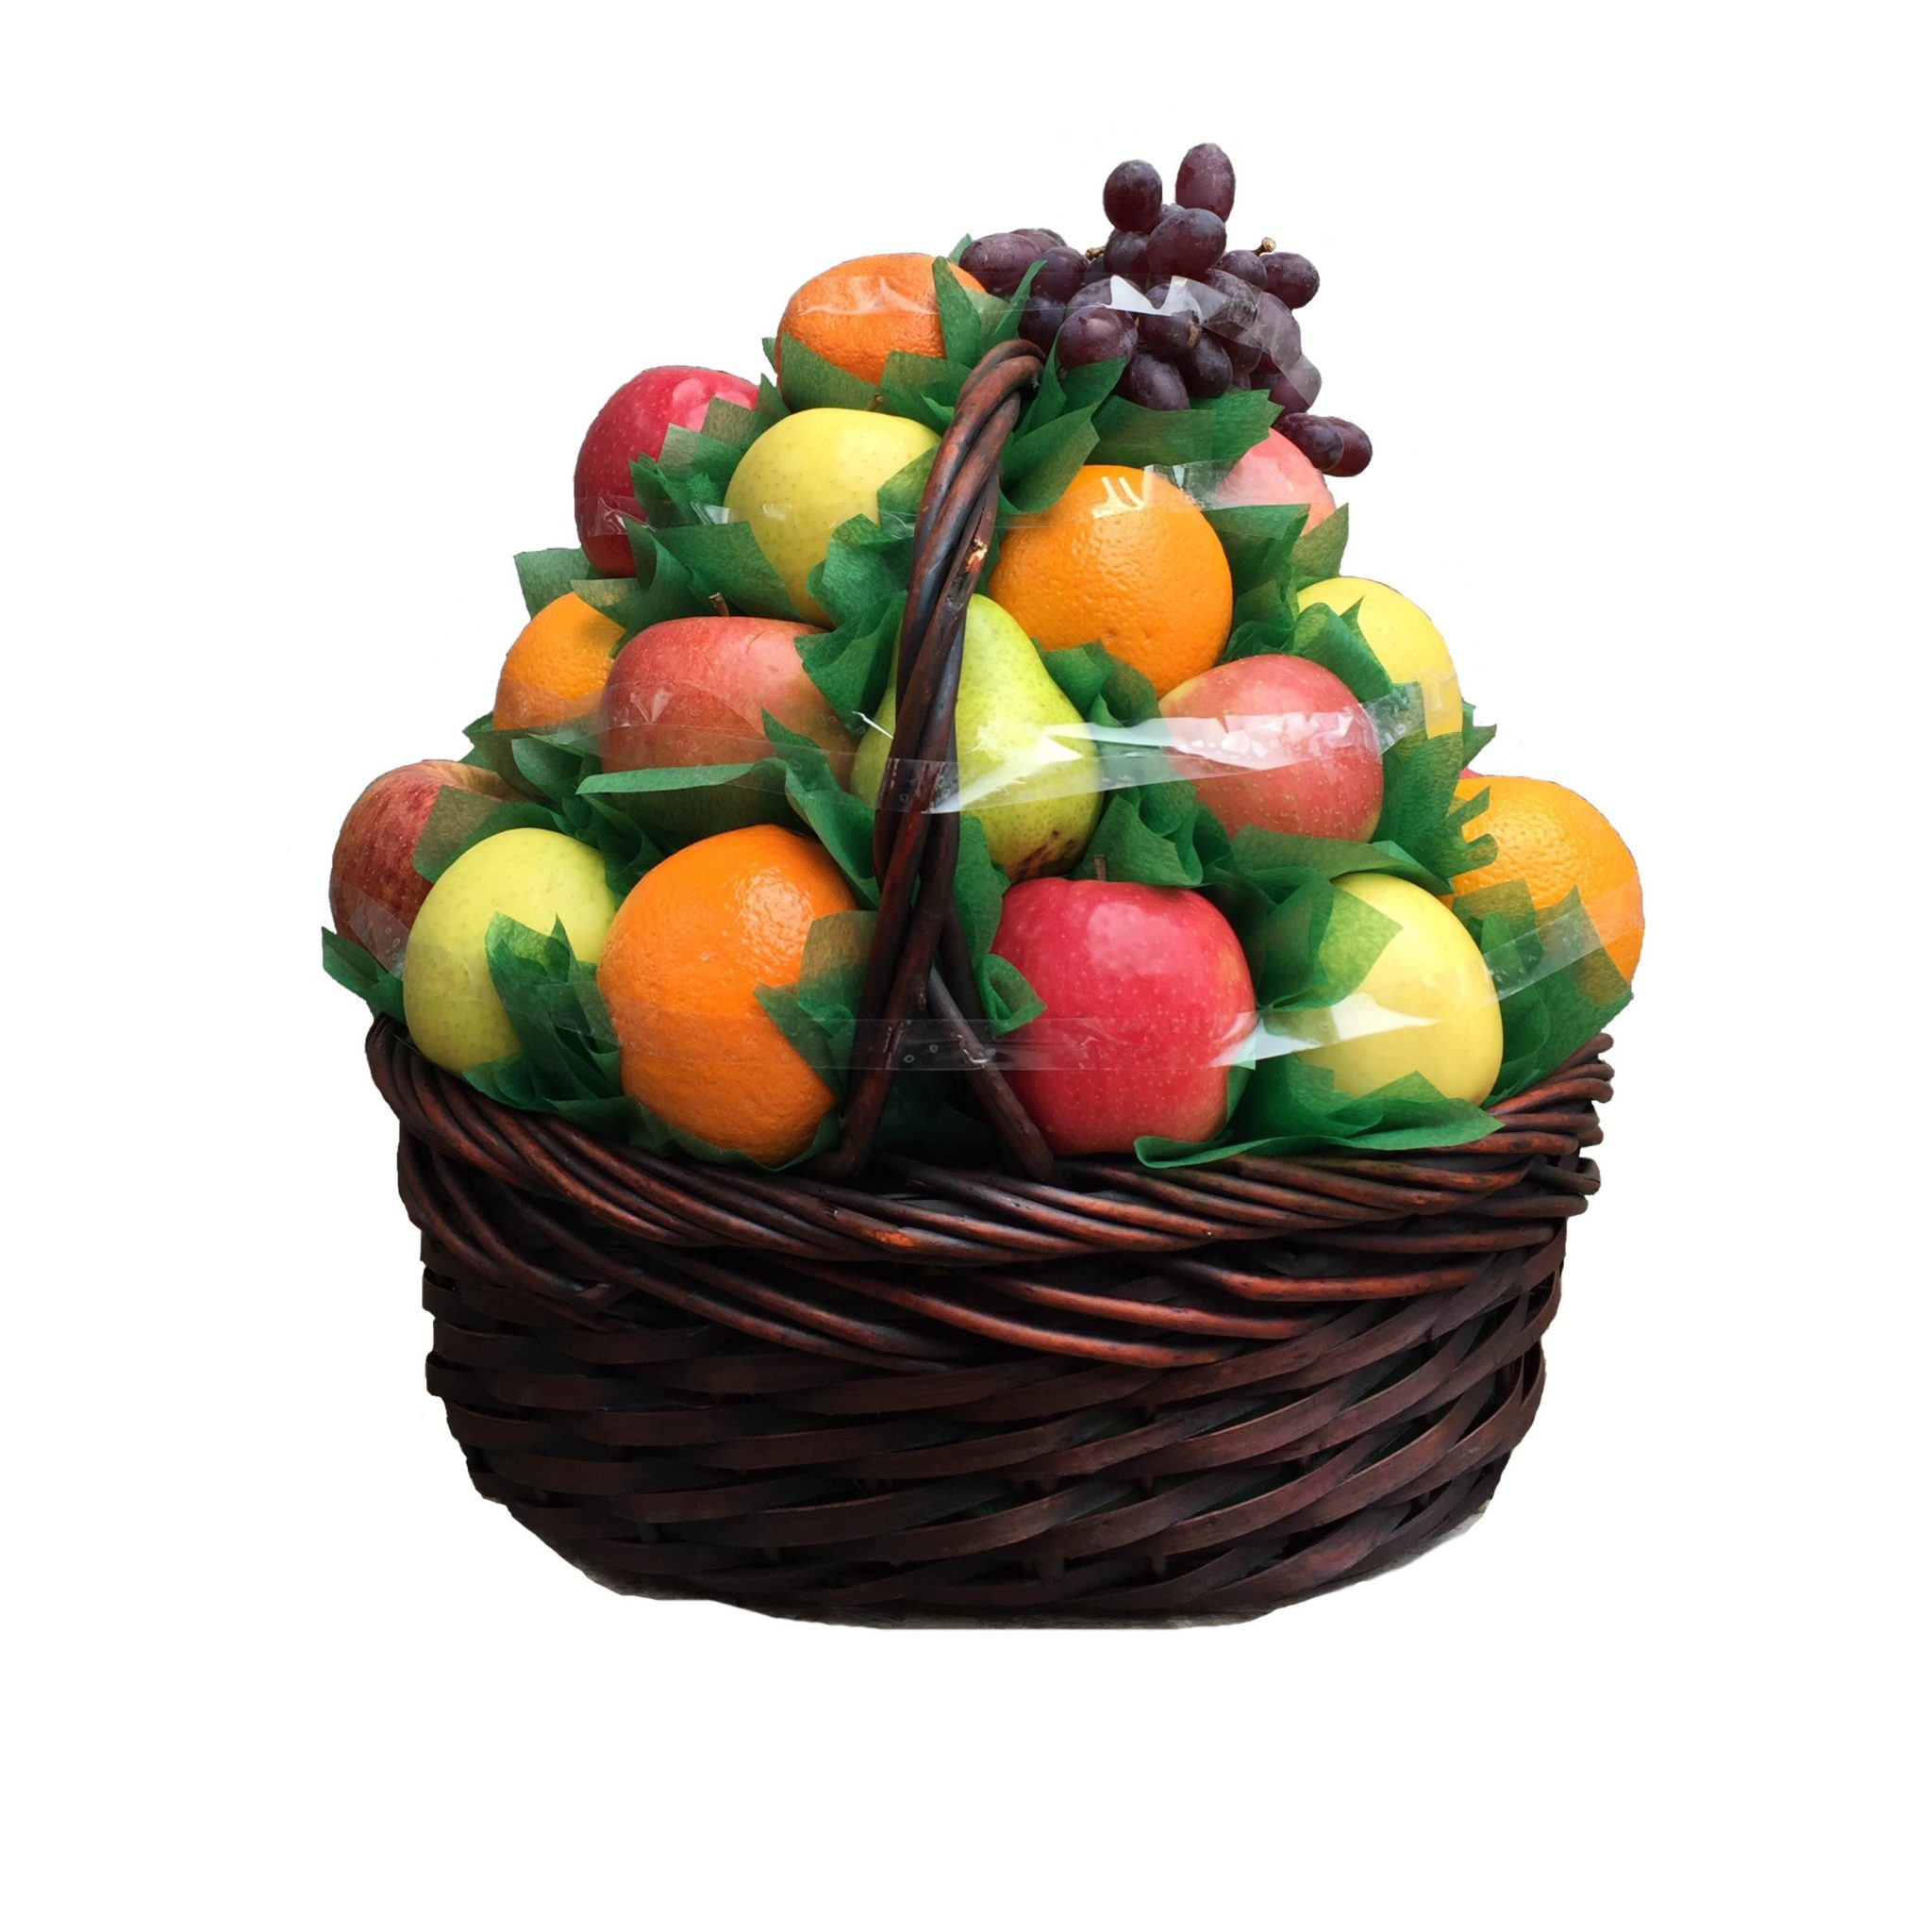 Fruit Baskets-$29.99 and up